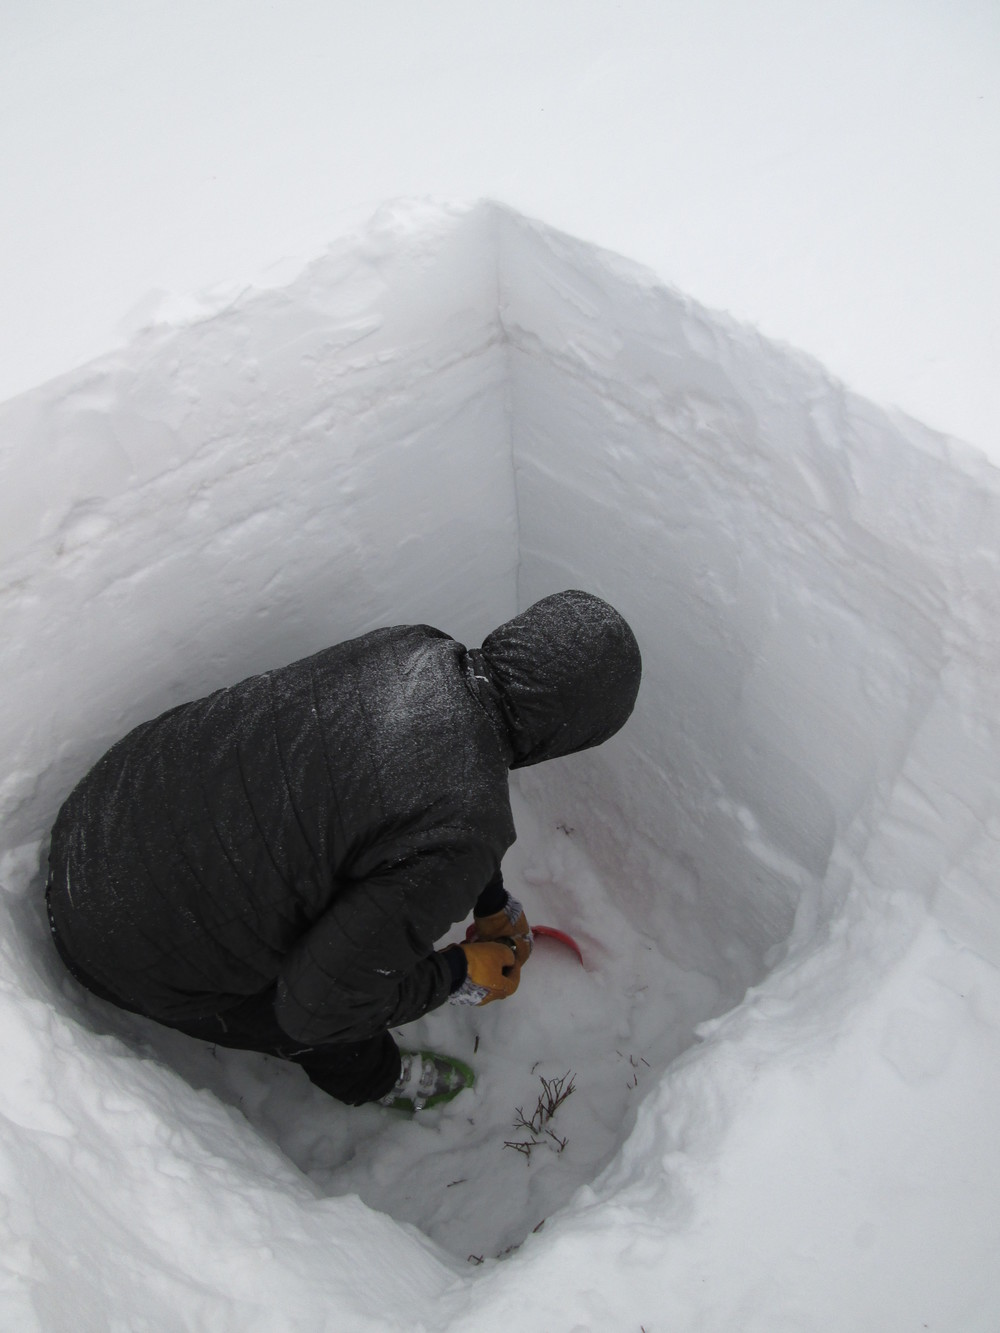 """CSAS field assistant Andrew Temple preparing the March 29 snow profile at the Hoosier Pass CODOS site. Dust layer D3-WY2014 was clearly visible in a diffuse band 8"""" below the snow surface. Dust layer D2 was present in a thin layer of ice just below D3. Dust layer D4 (March 30) fell onto the clean snow surface seen in this profile, significantly reducing snow albedo until fresh snowfall beginning today (April 2) began to bury D4. Once re-exposed, radiative forcing in layer D4 will need to melt almost 1"""" of SWE before merging with layer D3, reducing snow albedo even further."""